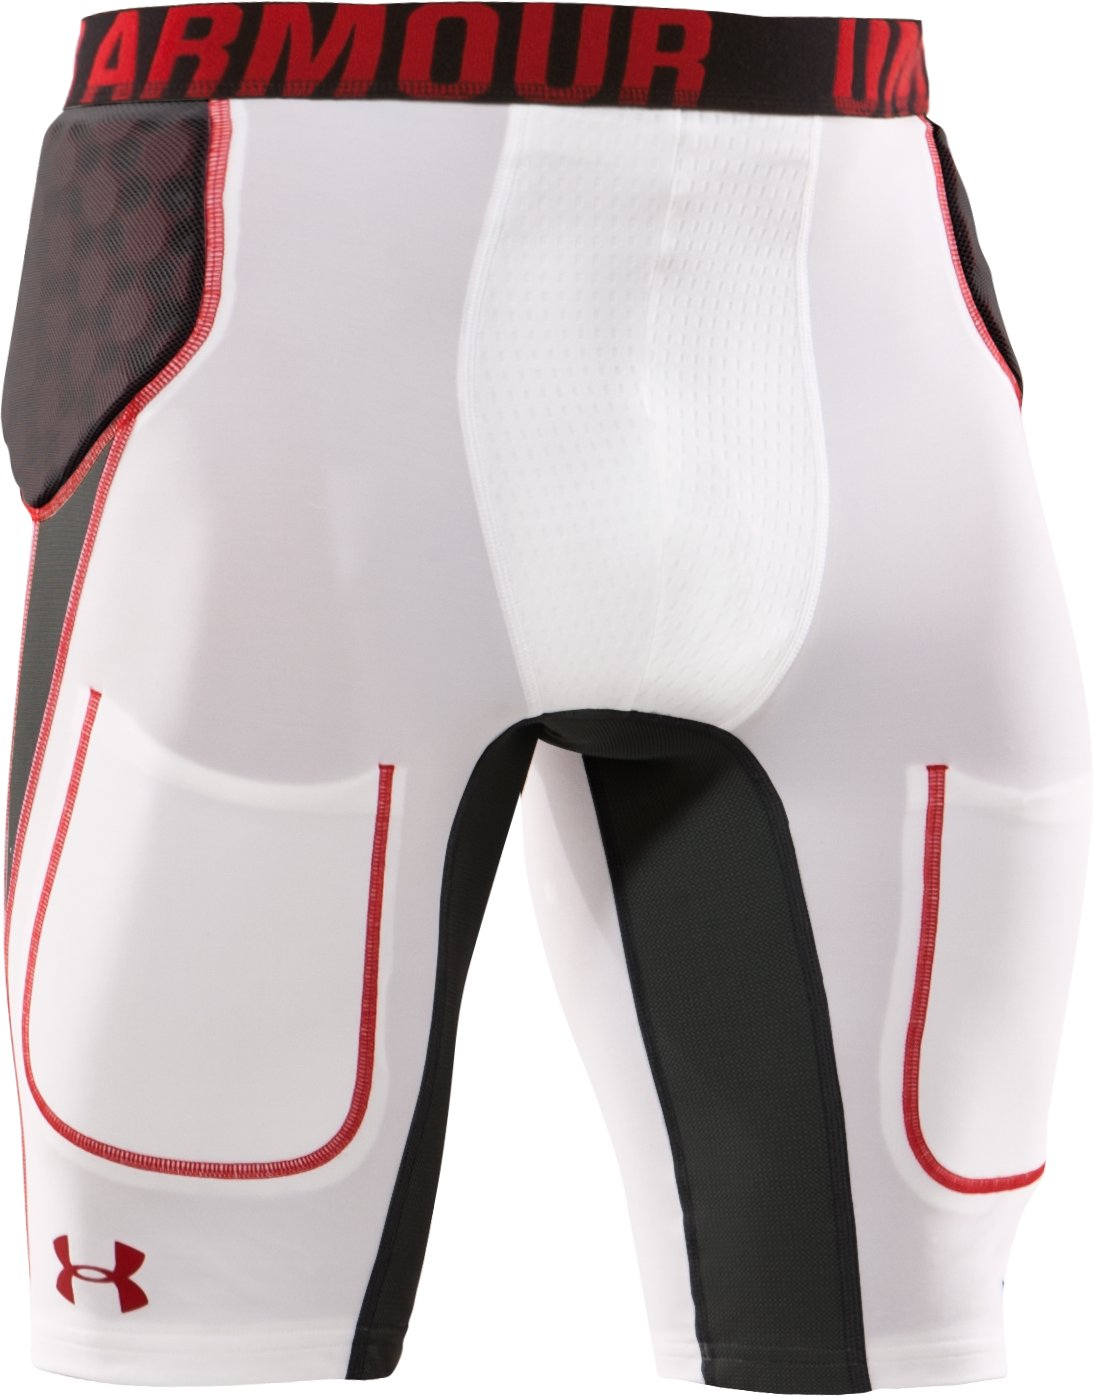 Men's 3-Pad MPZ® Stealth 5mm Girdle, White